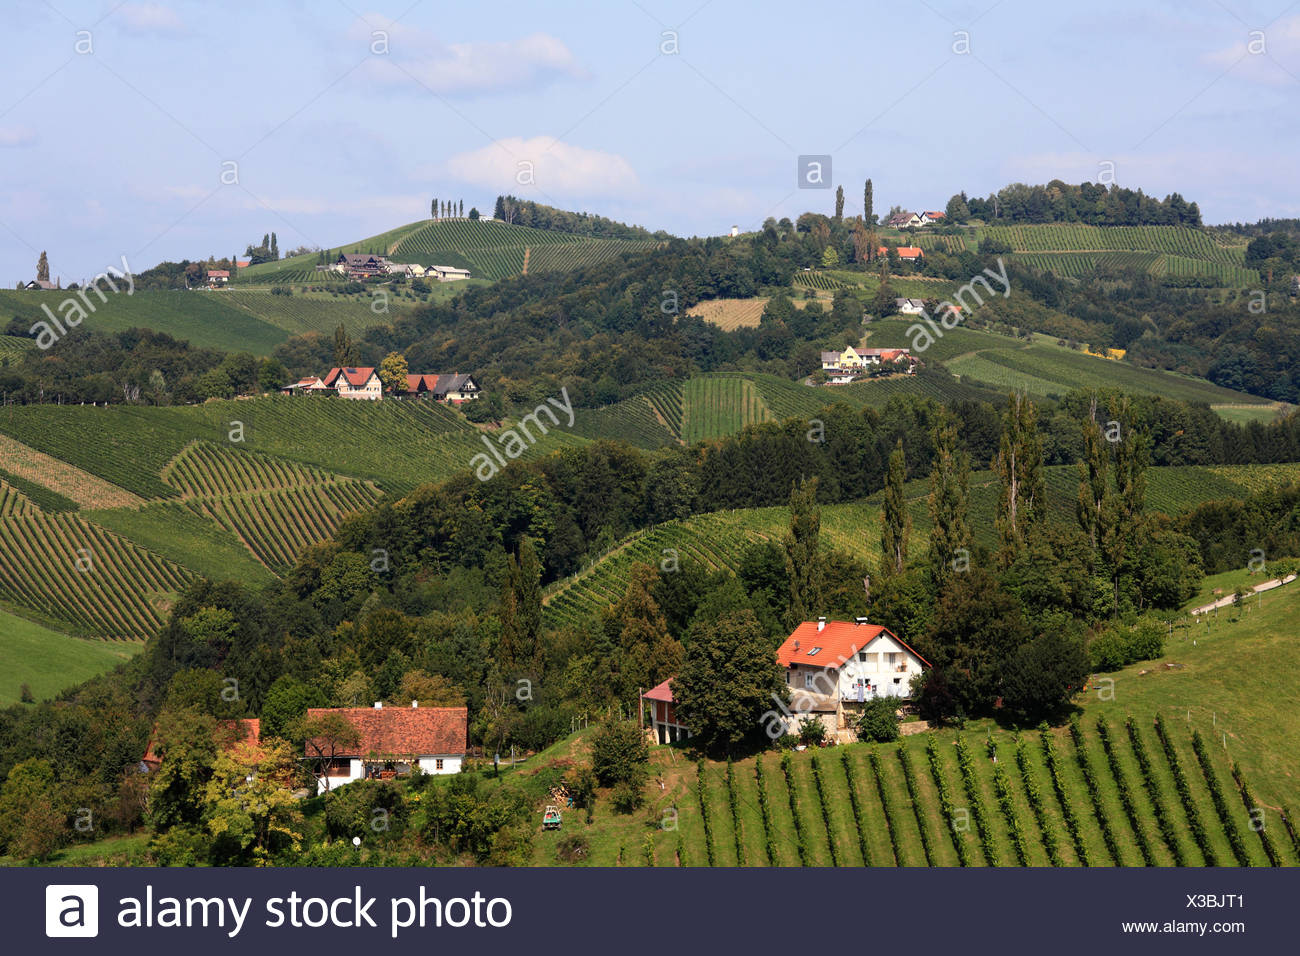 Vineyards in Langegg, Southern Styria, Austria, Europe - Stock Image